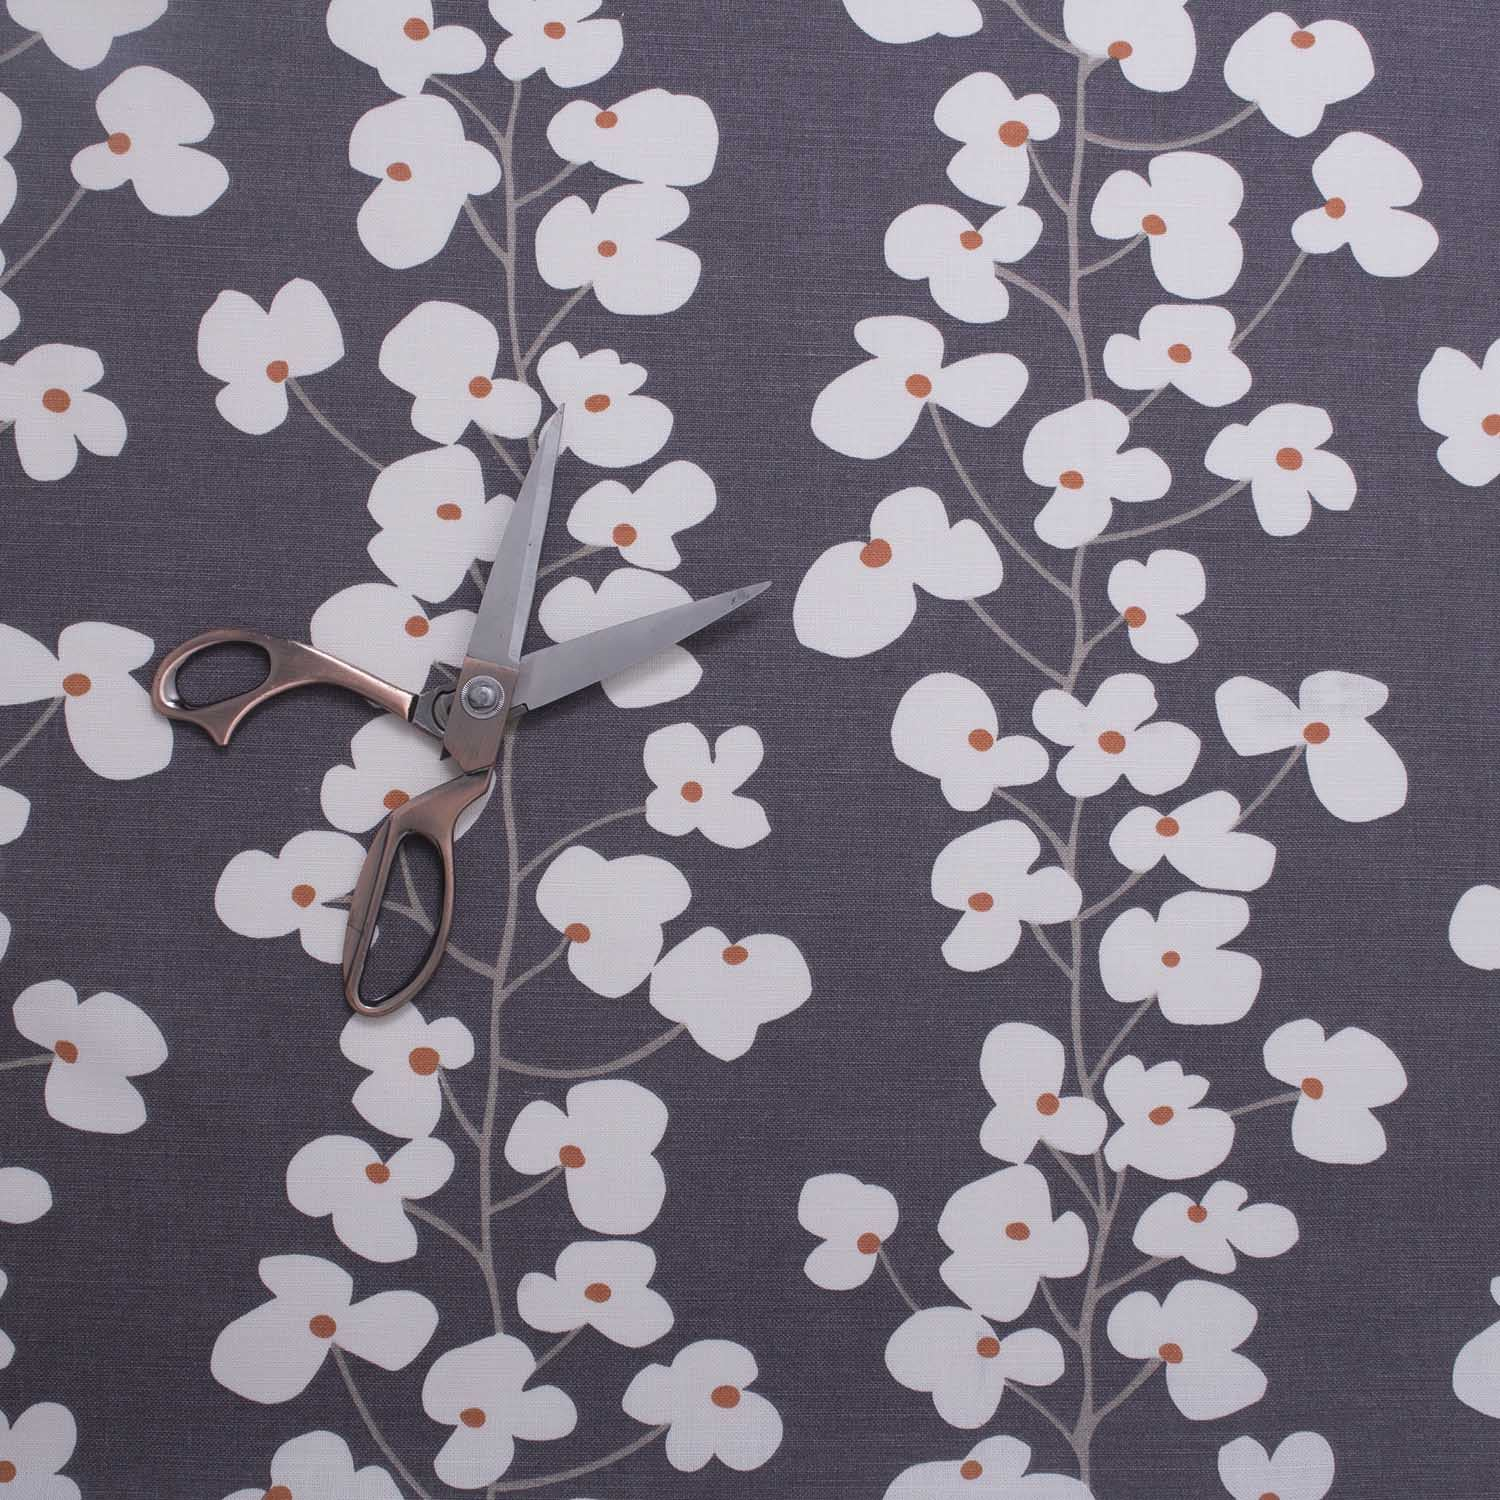 High Quality Car Printed Cotton Linen Blackout Curtain: Wallflower High Quality Fabric Floral Printed Design